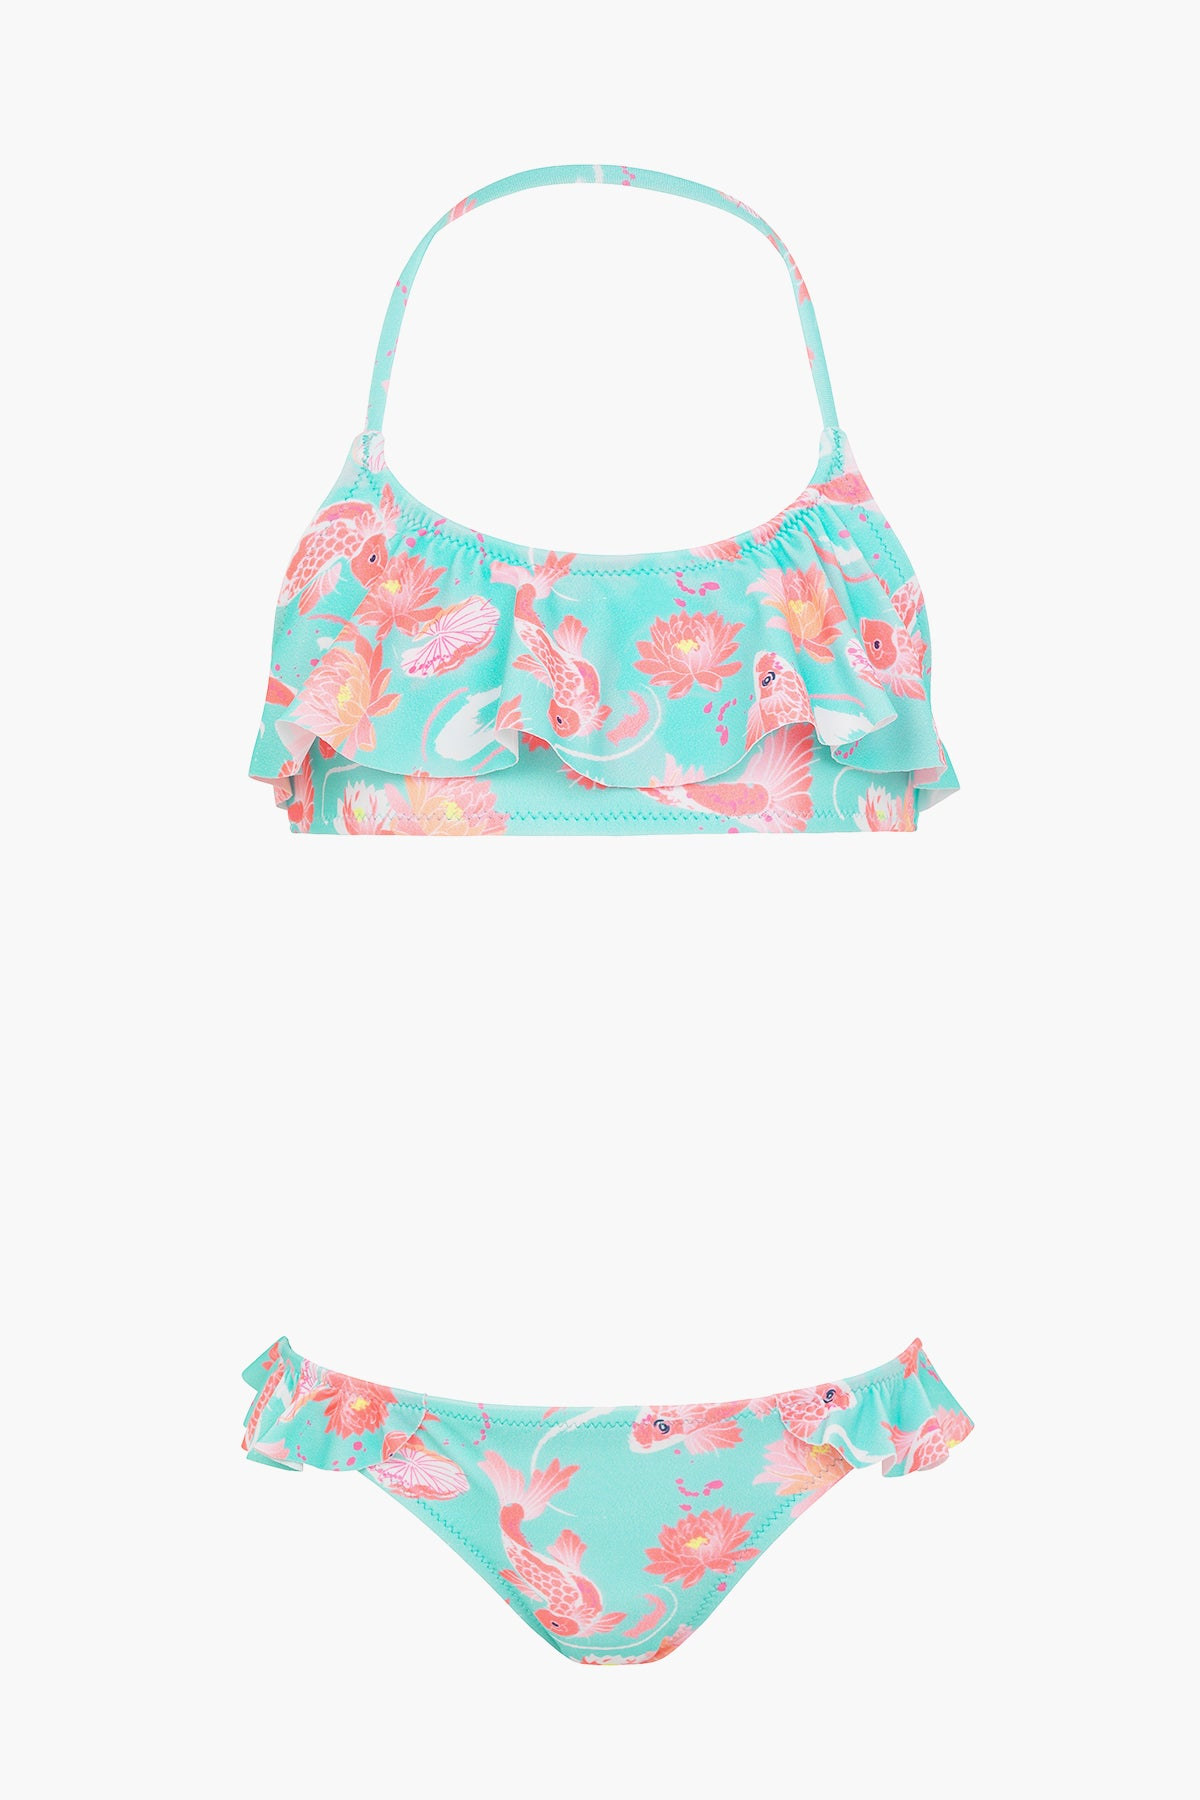 Sunuva Aqua Koi 3-Piece Swim Set